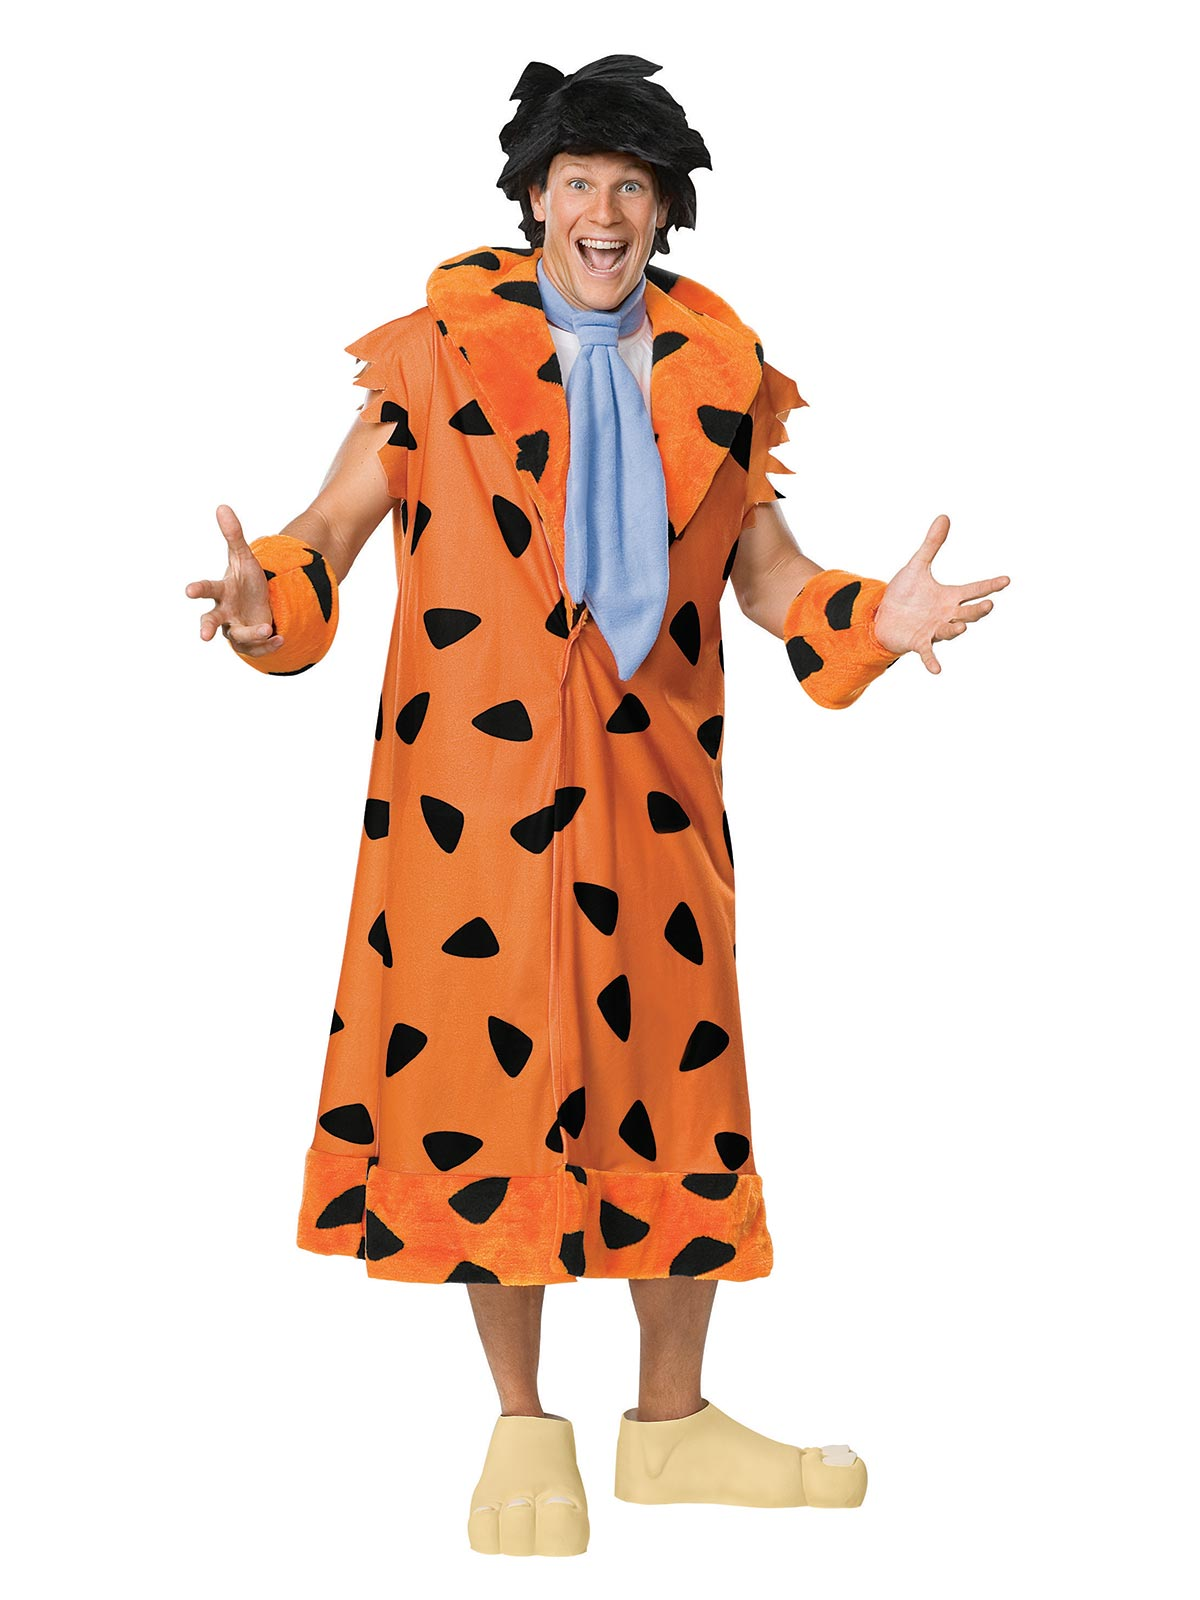 Fred Flintstone Deluxe The Flintstones Costume - Buy Online Only